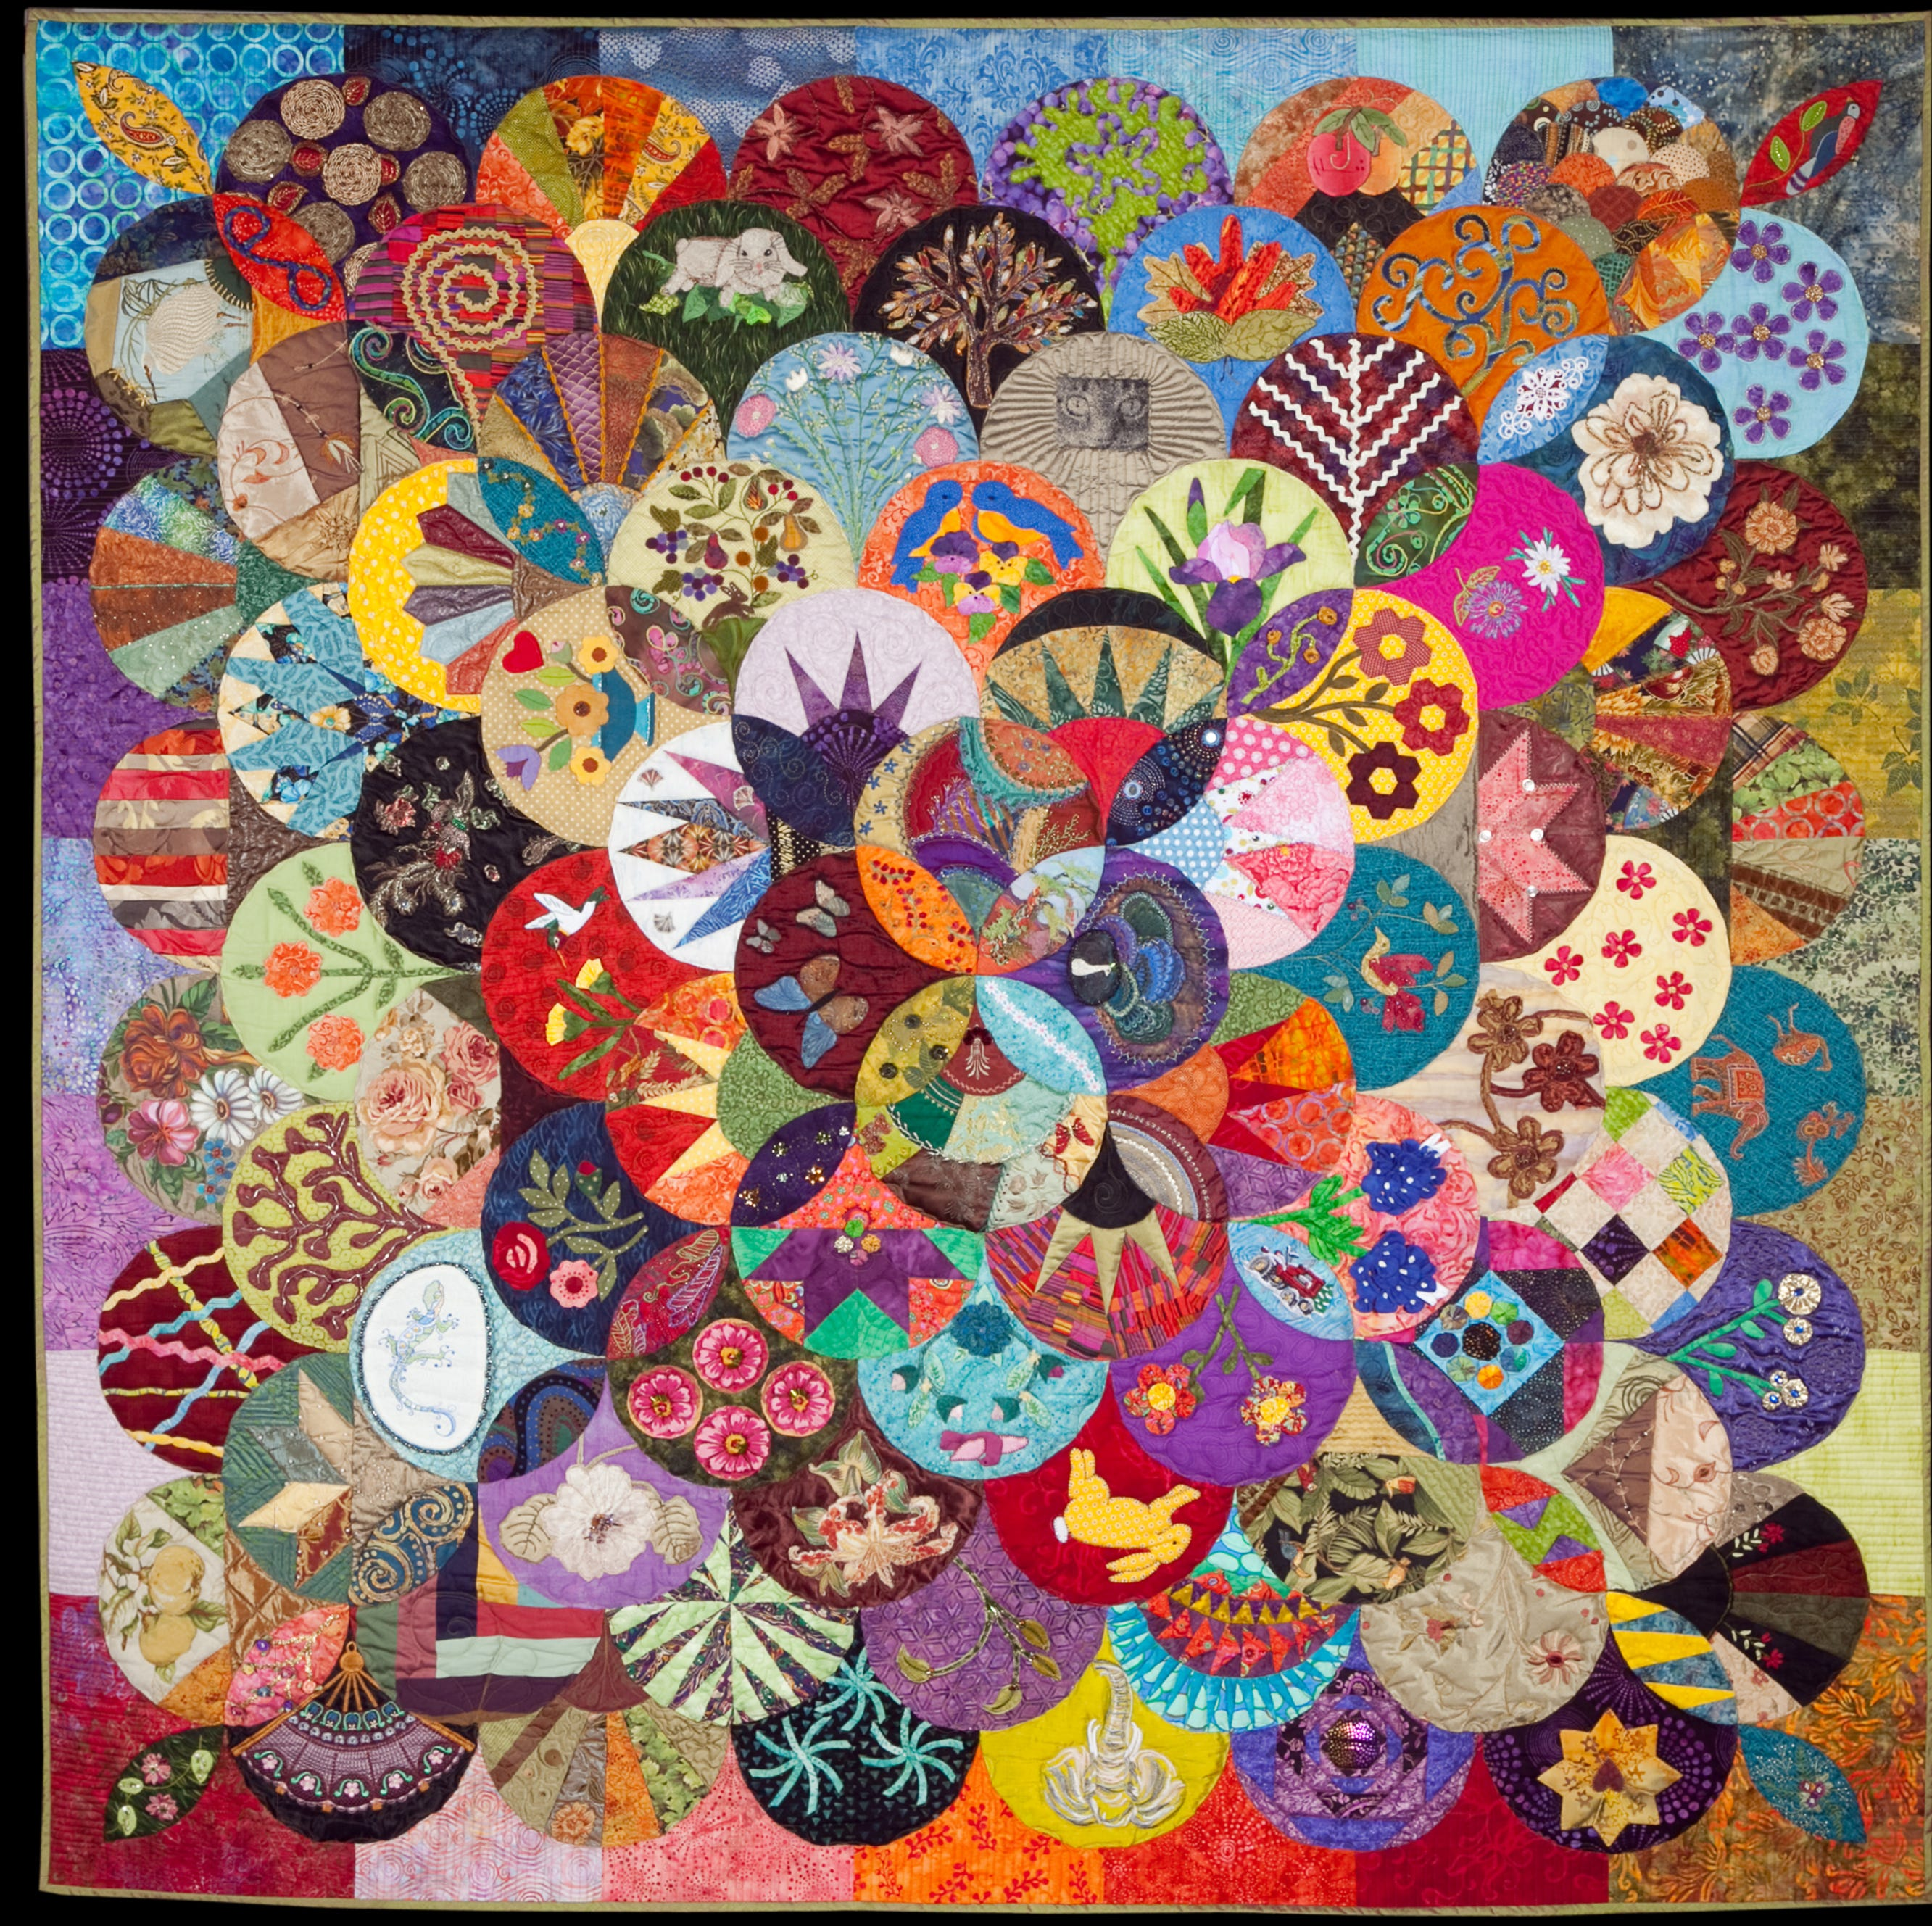 San Angelo exhibit shows off beauty, ingenuity and craftsmanship of quilters